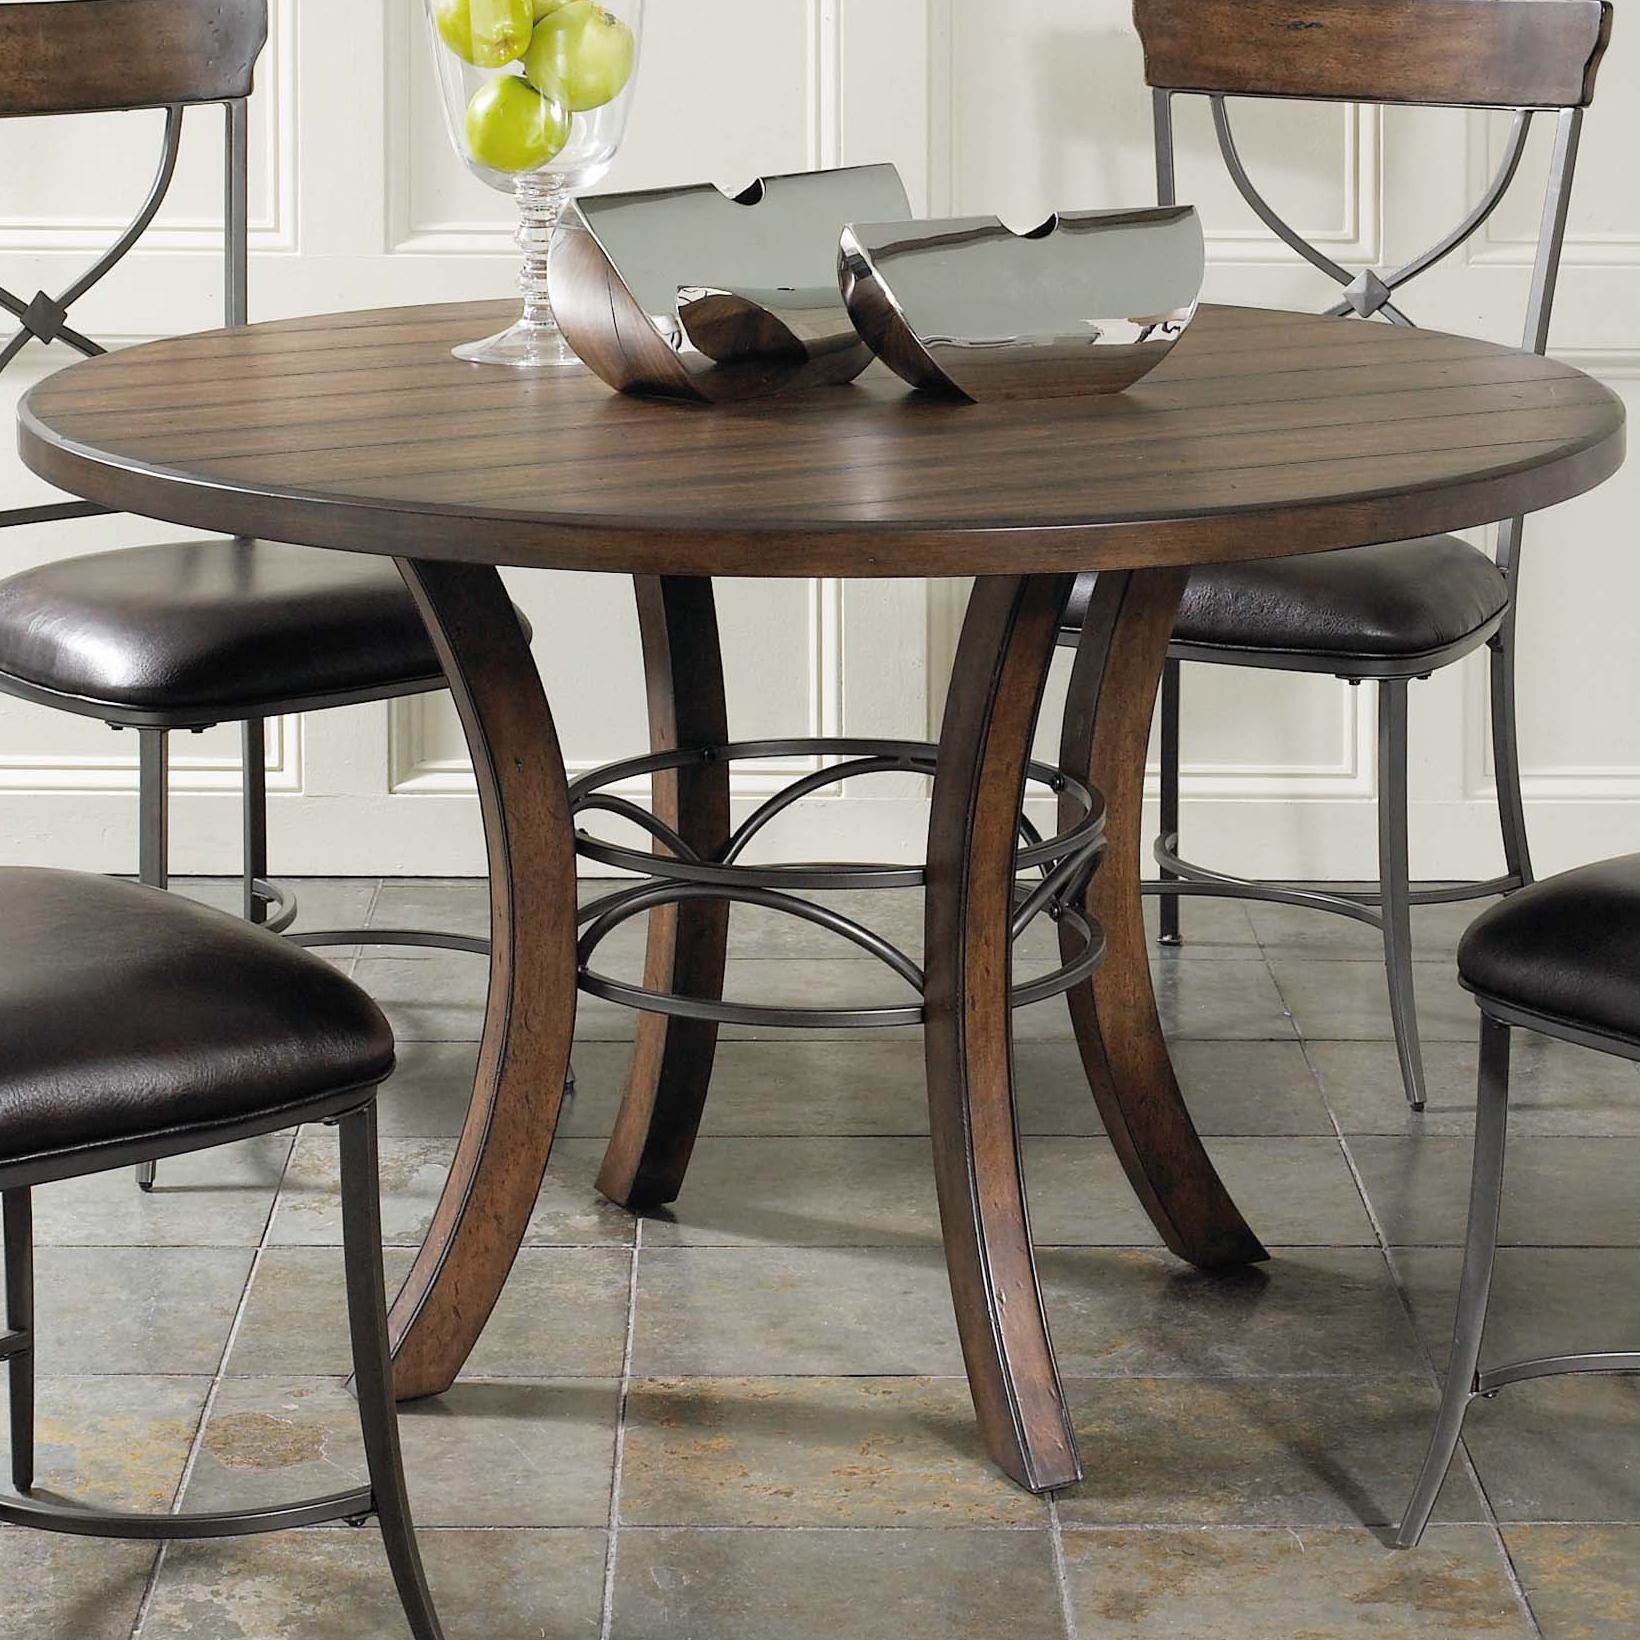 Delightful Wood And Metal Round Dining Table Part - 2: Round Wood Dining Table With Metal Acent Base